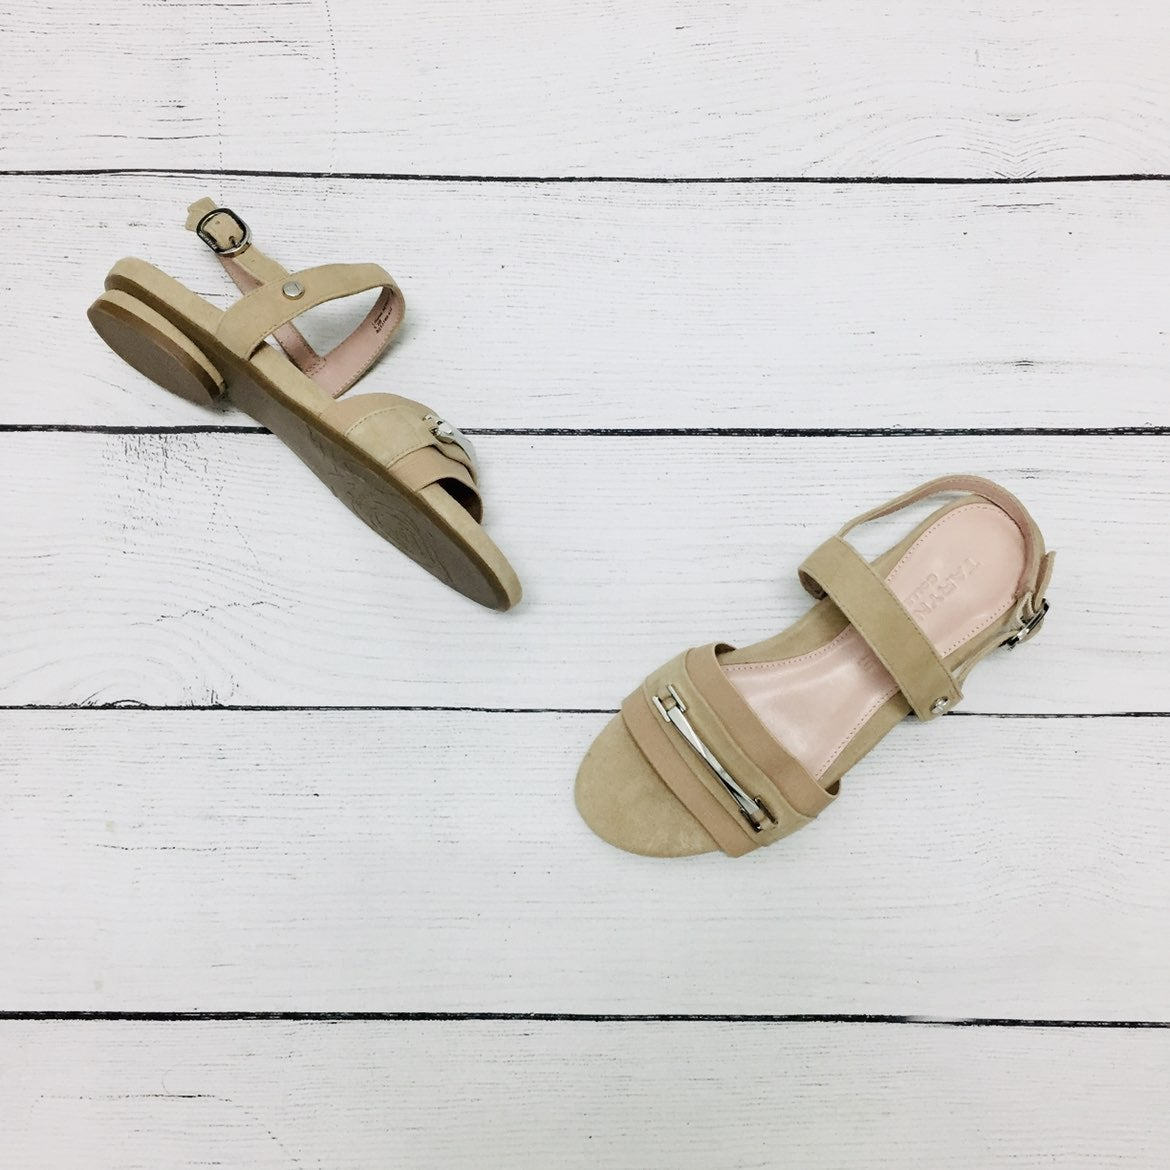 Taryn Rose Nude Sandals size 5.5 NWT